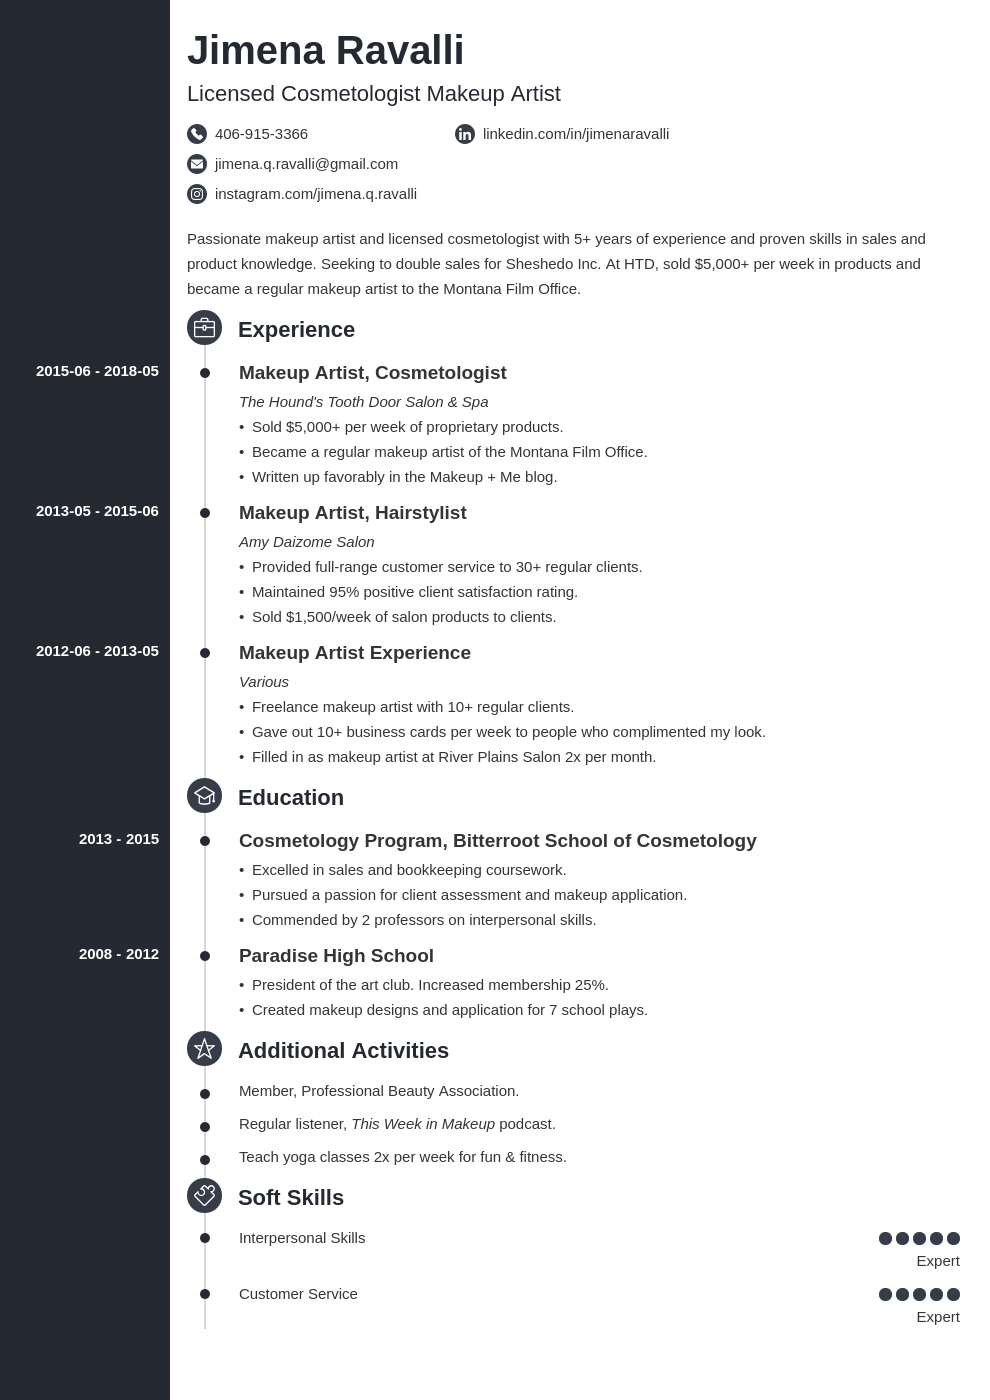 Makeup Artist Resume Sample For 2020 Guide Examples